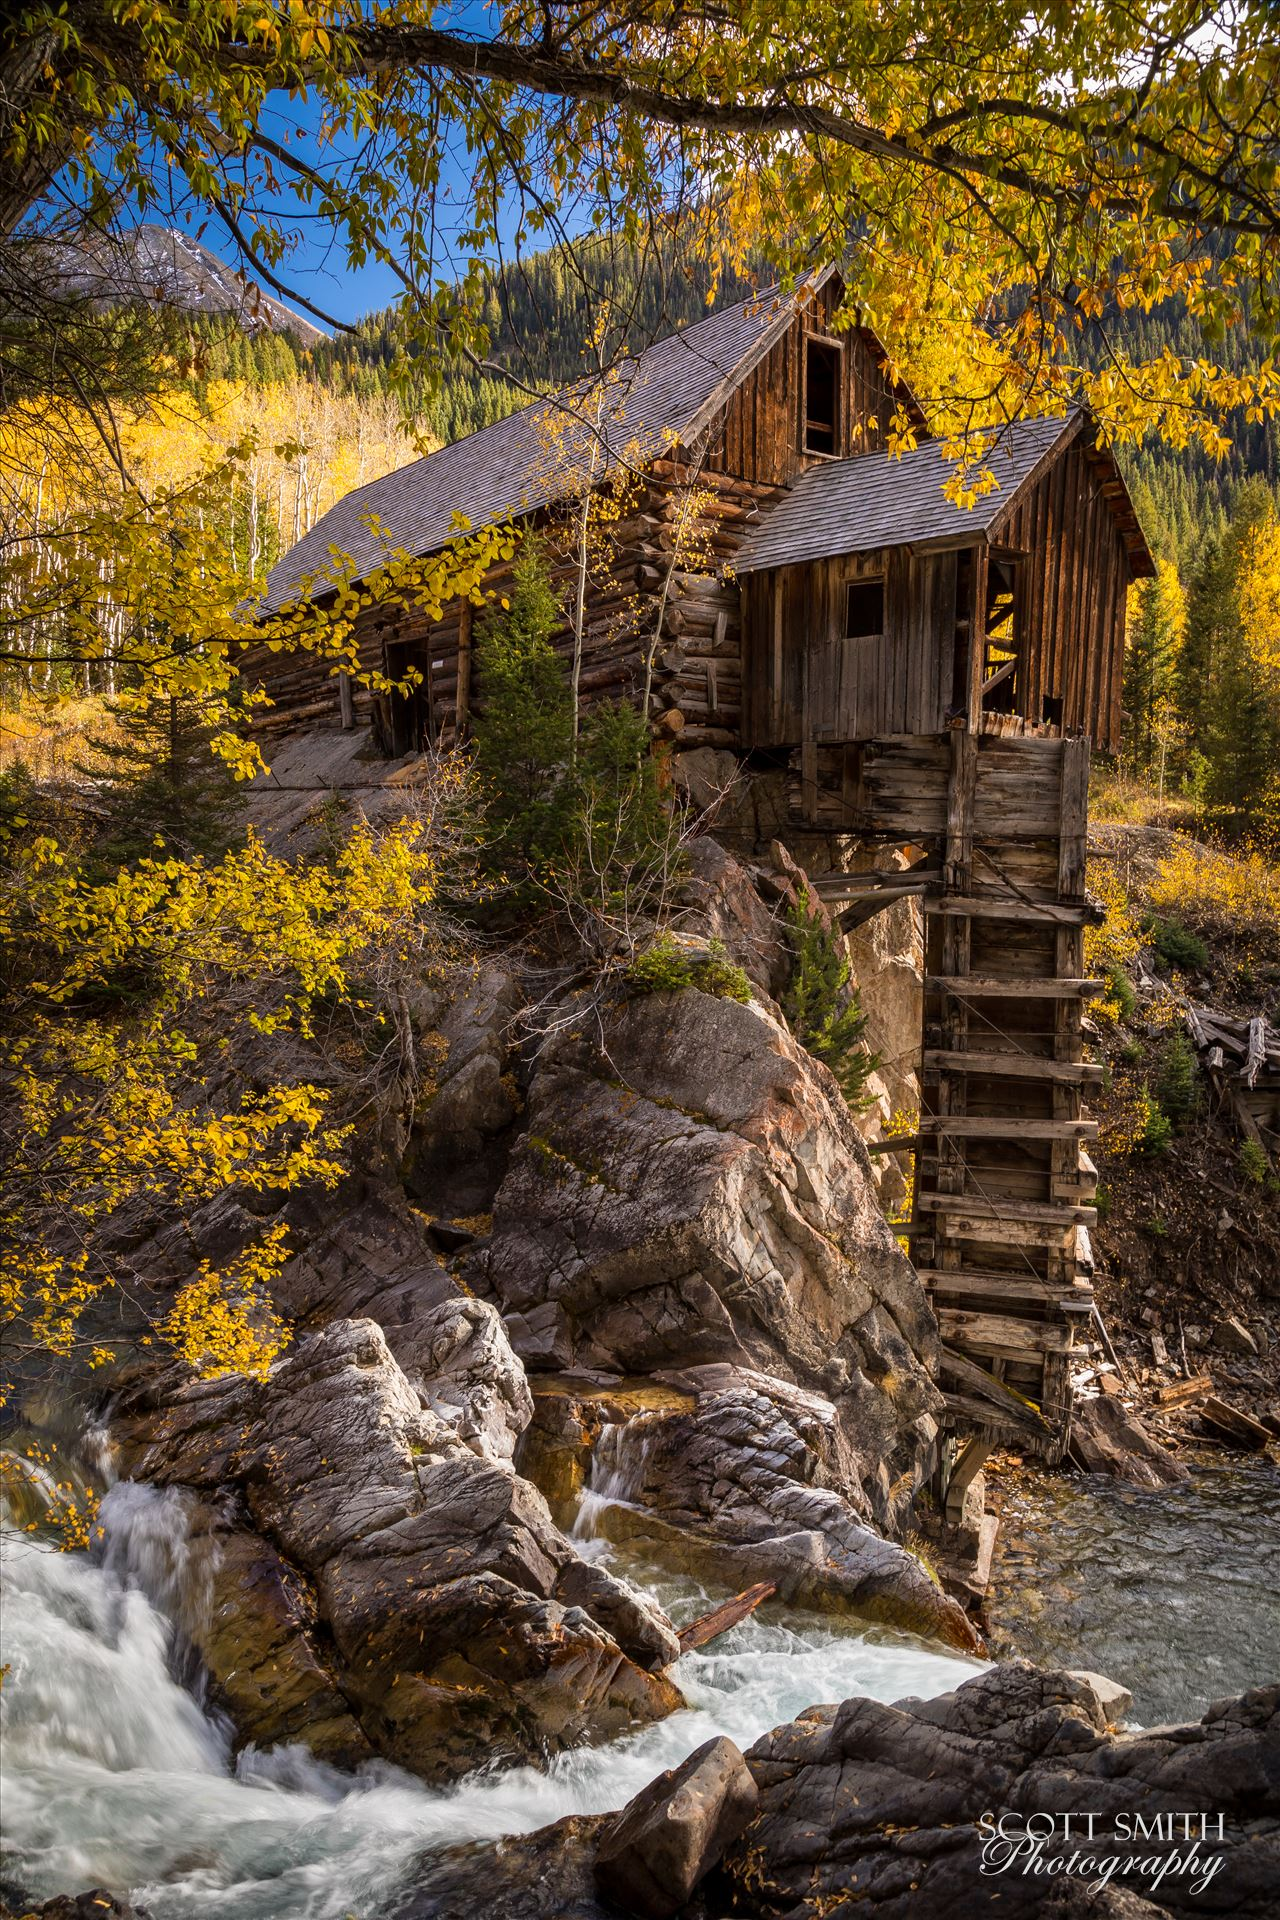 Crystal Mill No 2The Crystal Mill, or the Old Mill is an 1892 wooden powerhouse located on an outcrop above the Crystal River in Crystal, Colorado